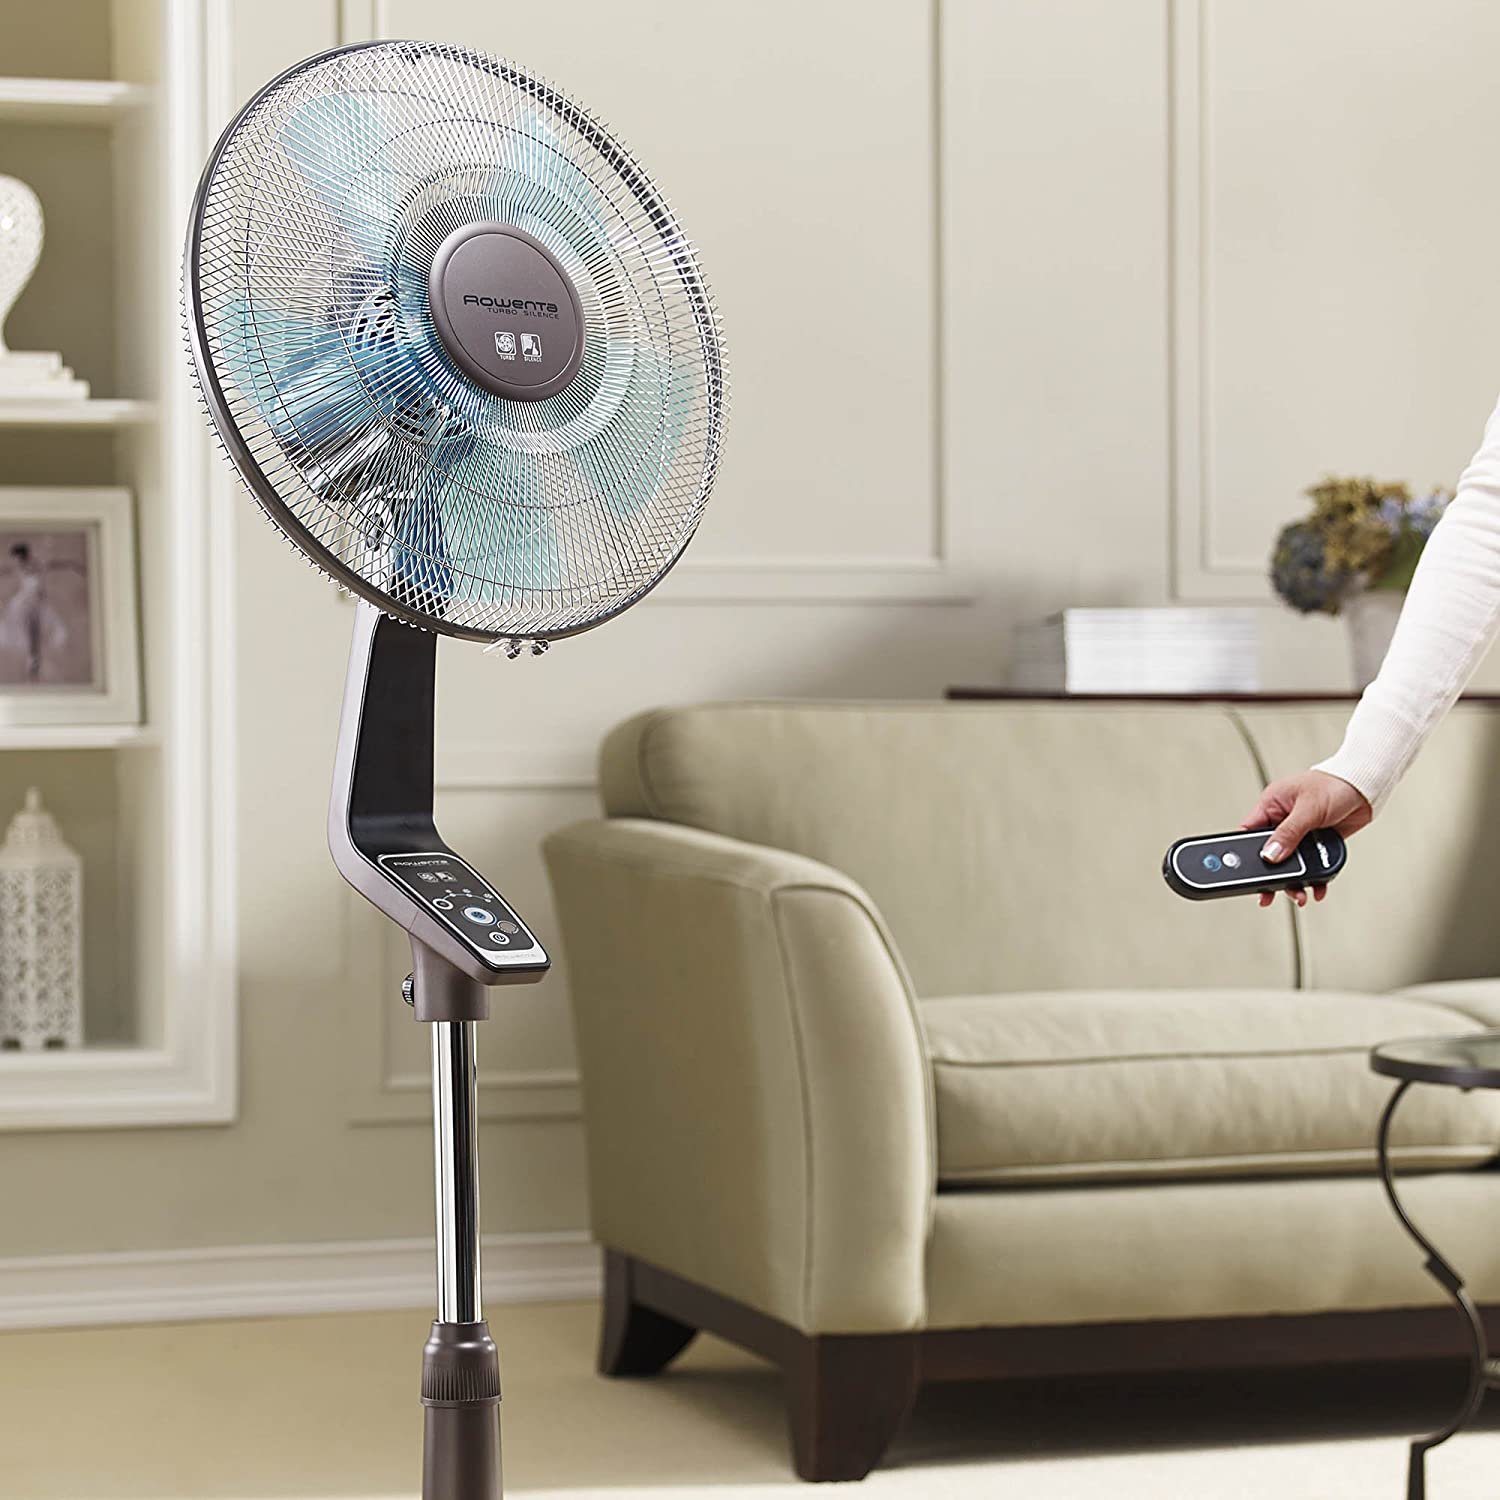 Amazon com  Rowenta VU5551 Turbo Silence Oscillating 16 Inch Stand Fan  Powerful and Quiet with Remote Control  4 Speed  Silver  Home   Kitchen. Amazon com  Rowenta VU5551 Turbo Silence Oscillating 16 Inch Stand